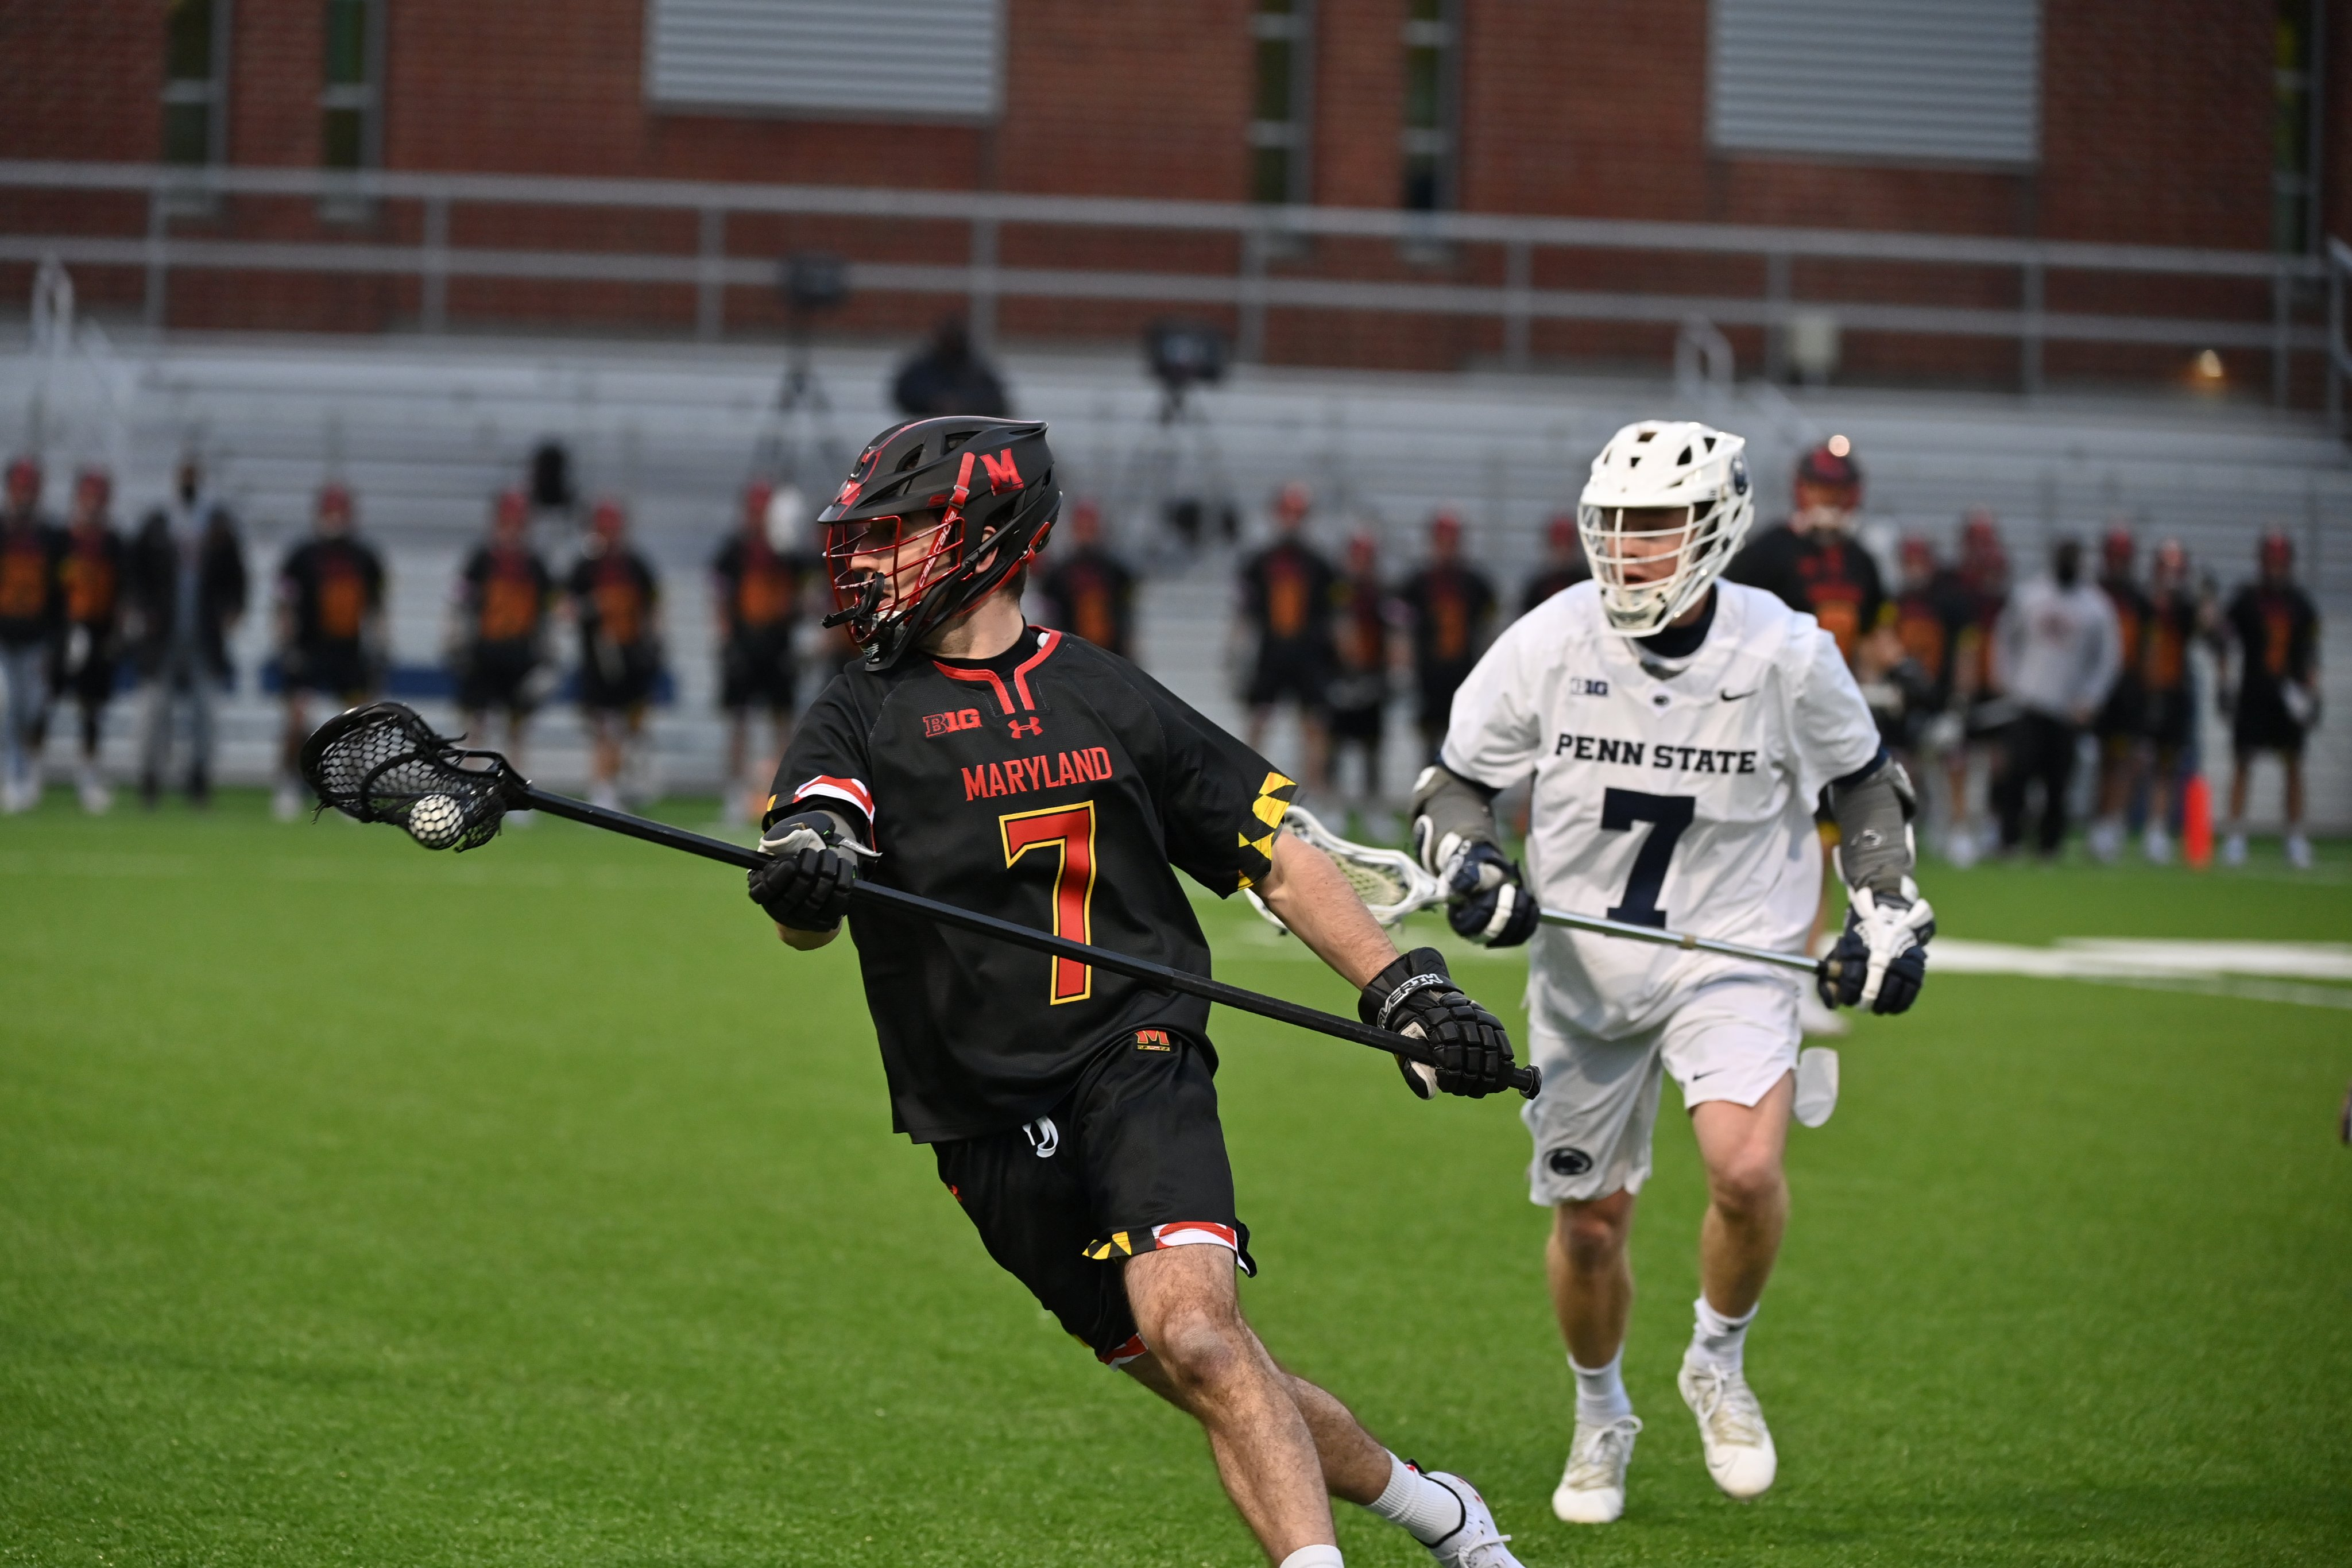 Maryland Overpowers Penn State in Friday Night Contest